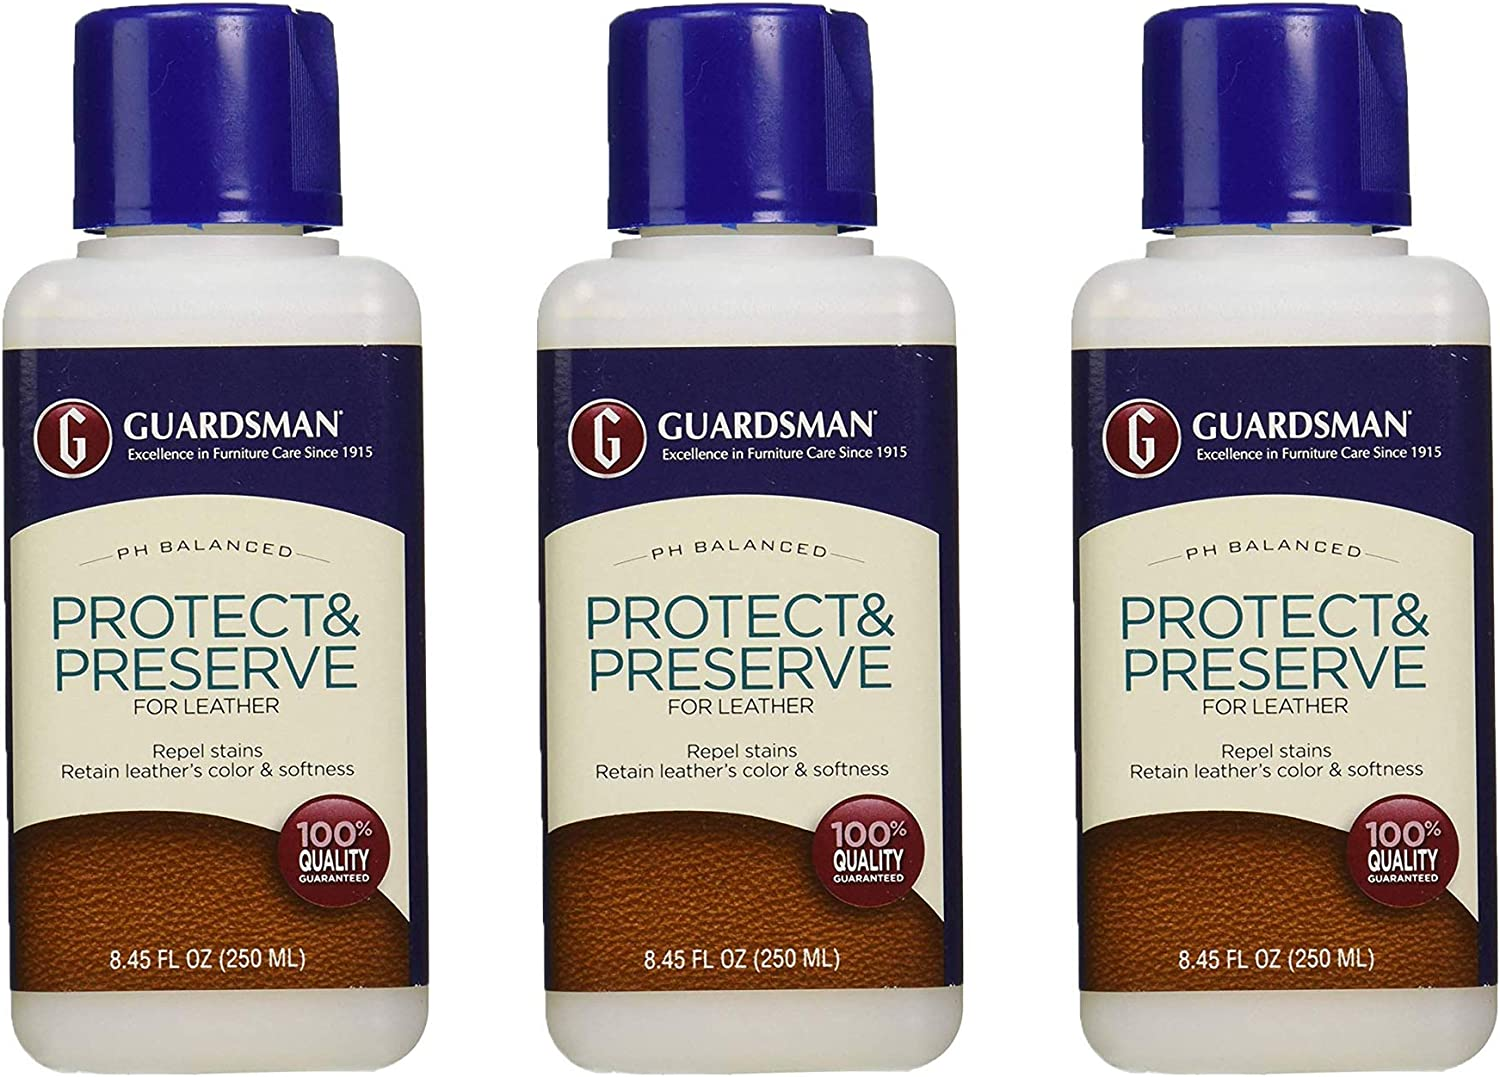 Guardsman Protect & Preserve For Leather 8.4 oz - Repels Stains, Retains Color and Softness, Great for Leather Furniture & Car Interiors - 471000, Pack 3